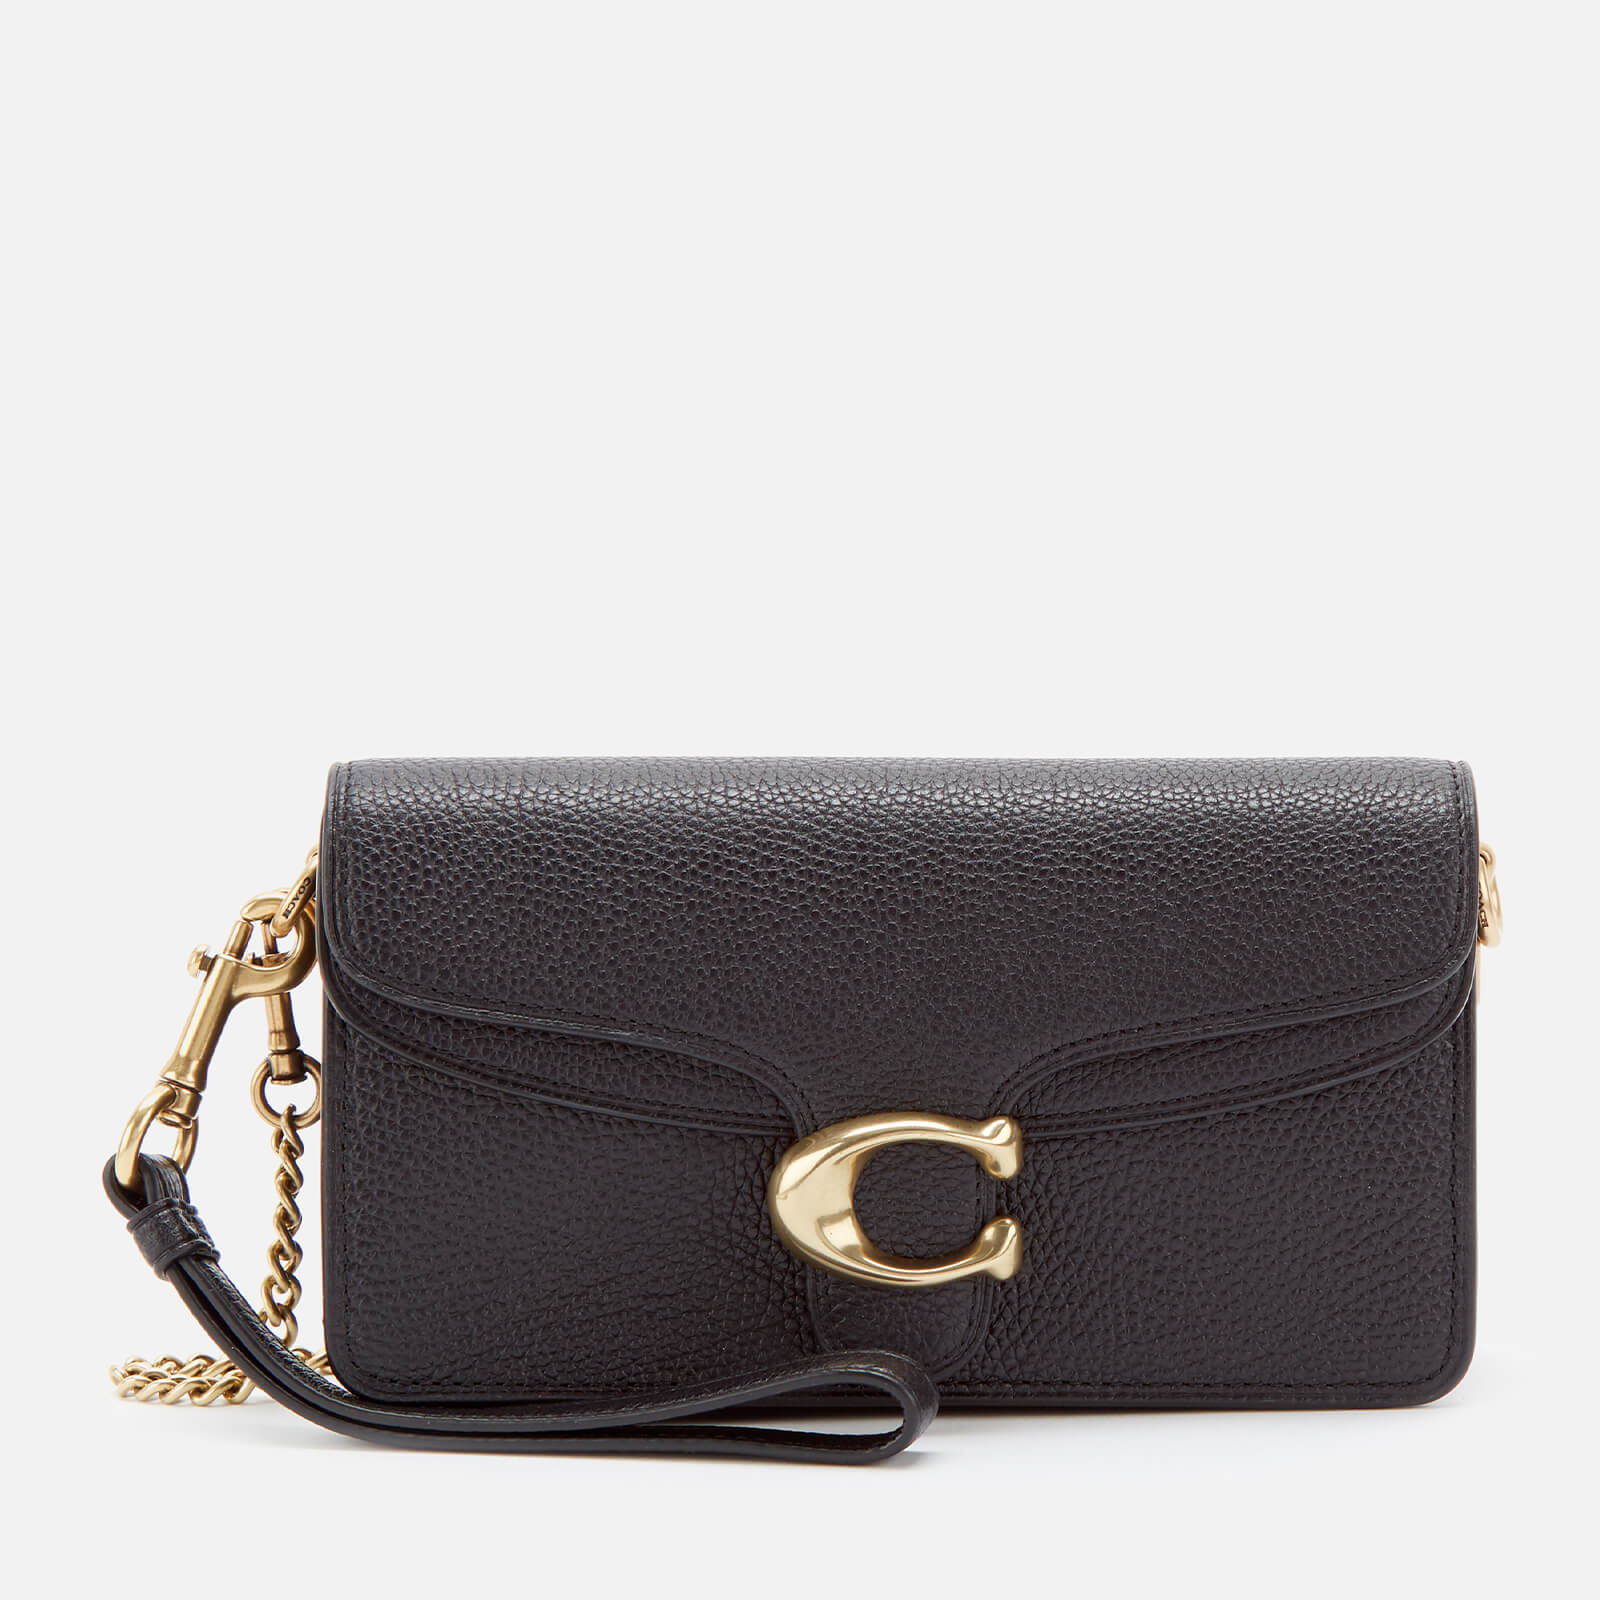 Coach Women's Tabby Cross Body Bag - Black